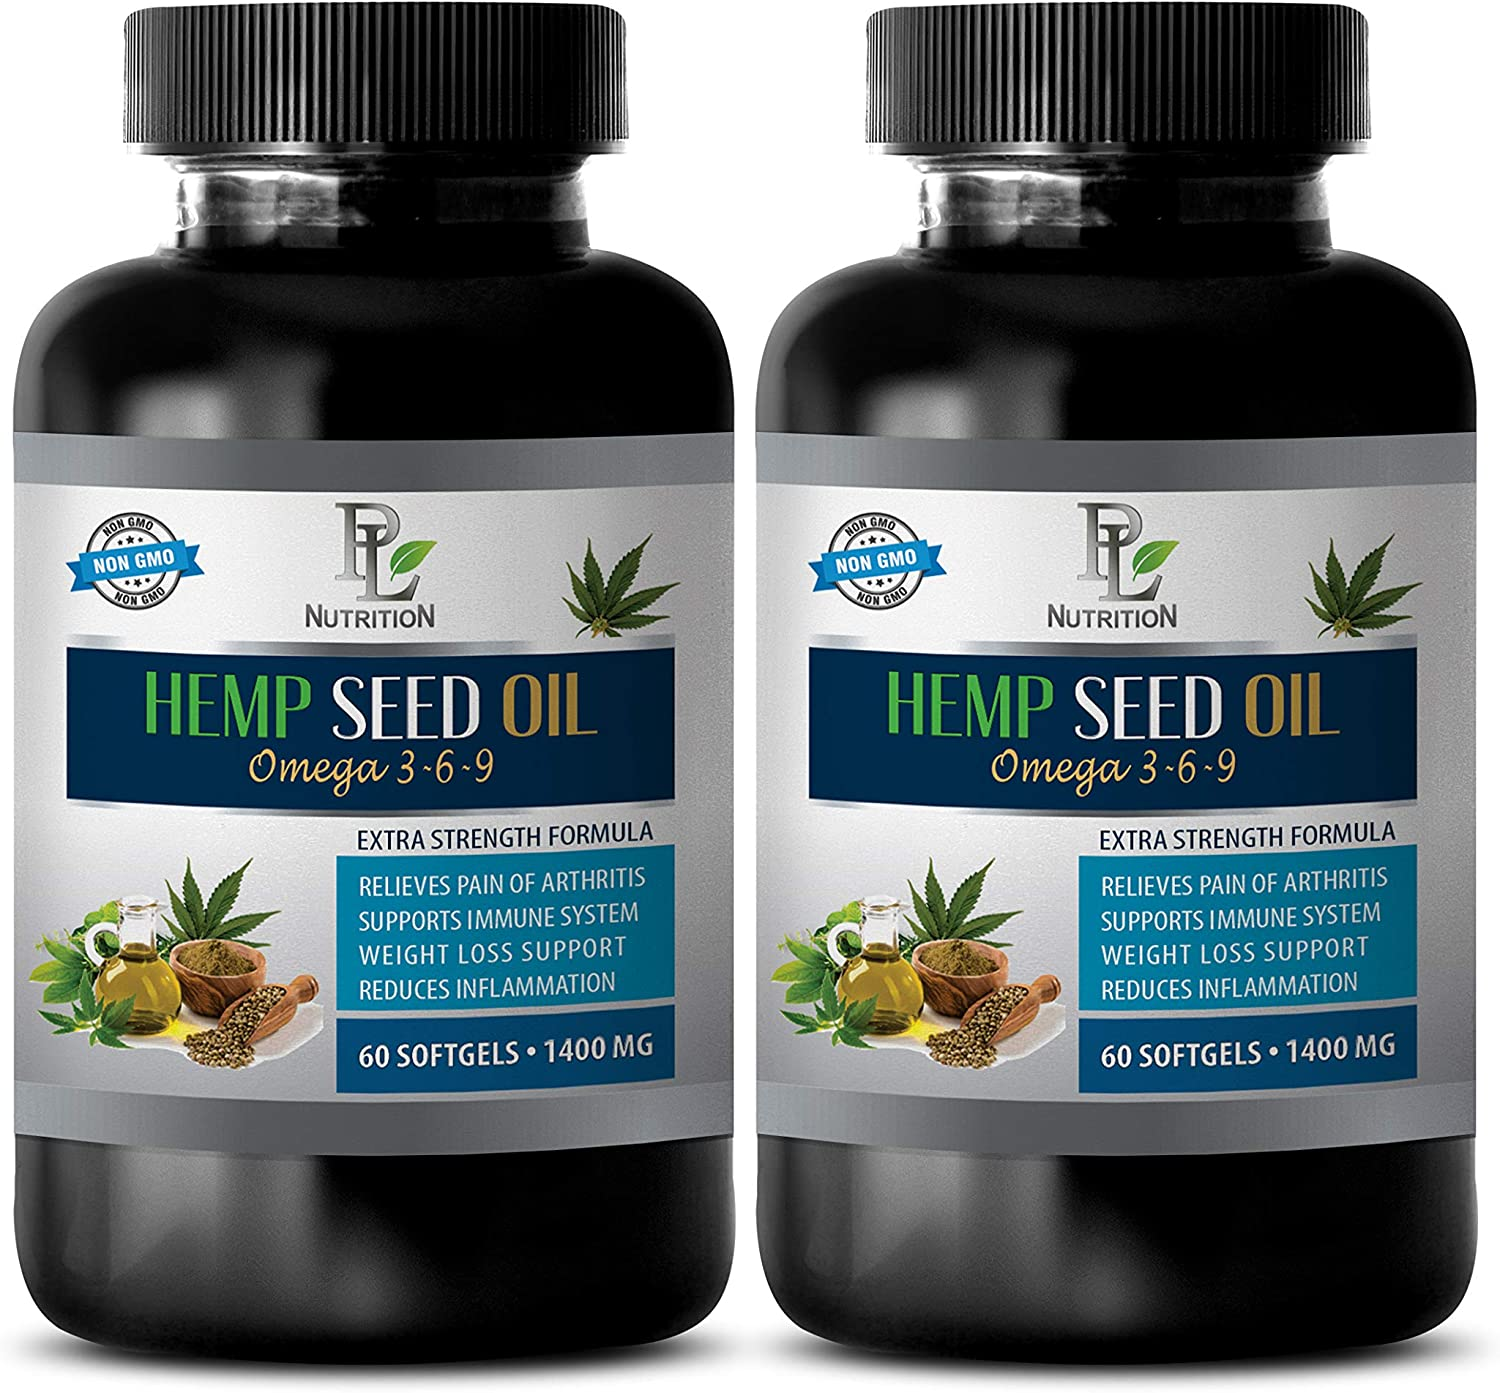 New Bombing free shipping color Anxiety Relief Capsules - Hemp Oil 1400m Pain Organic for